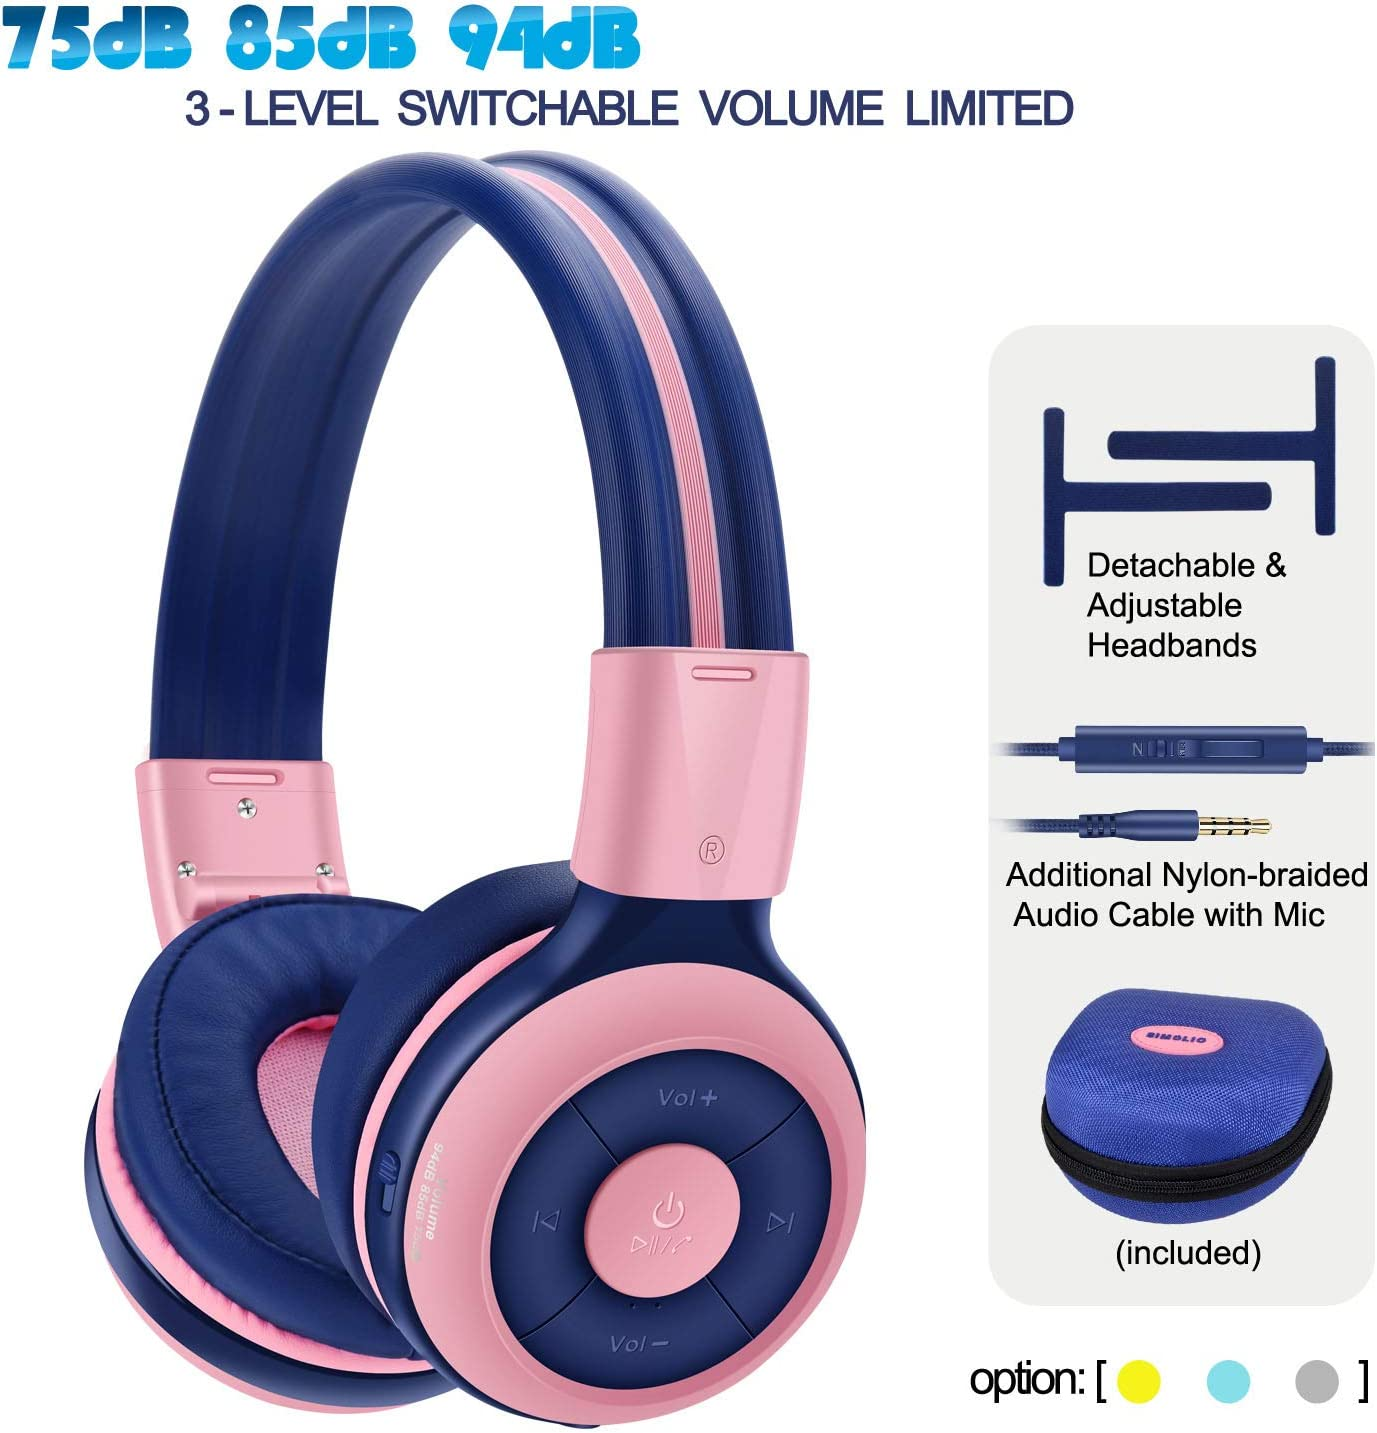 SIMOLIO Kids Headphones Bluetooth with 75dB,85dB,94dB Safe Volume for Hearing Protection, Wireless Headphone for Kids with Mic Share,Foldable Kids Headset with In-Line Audio Control for Girls Pink